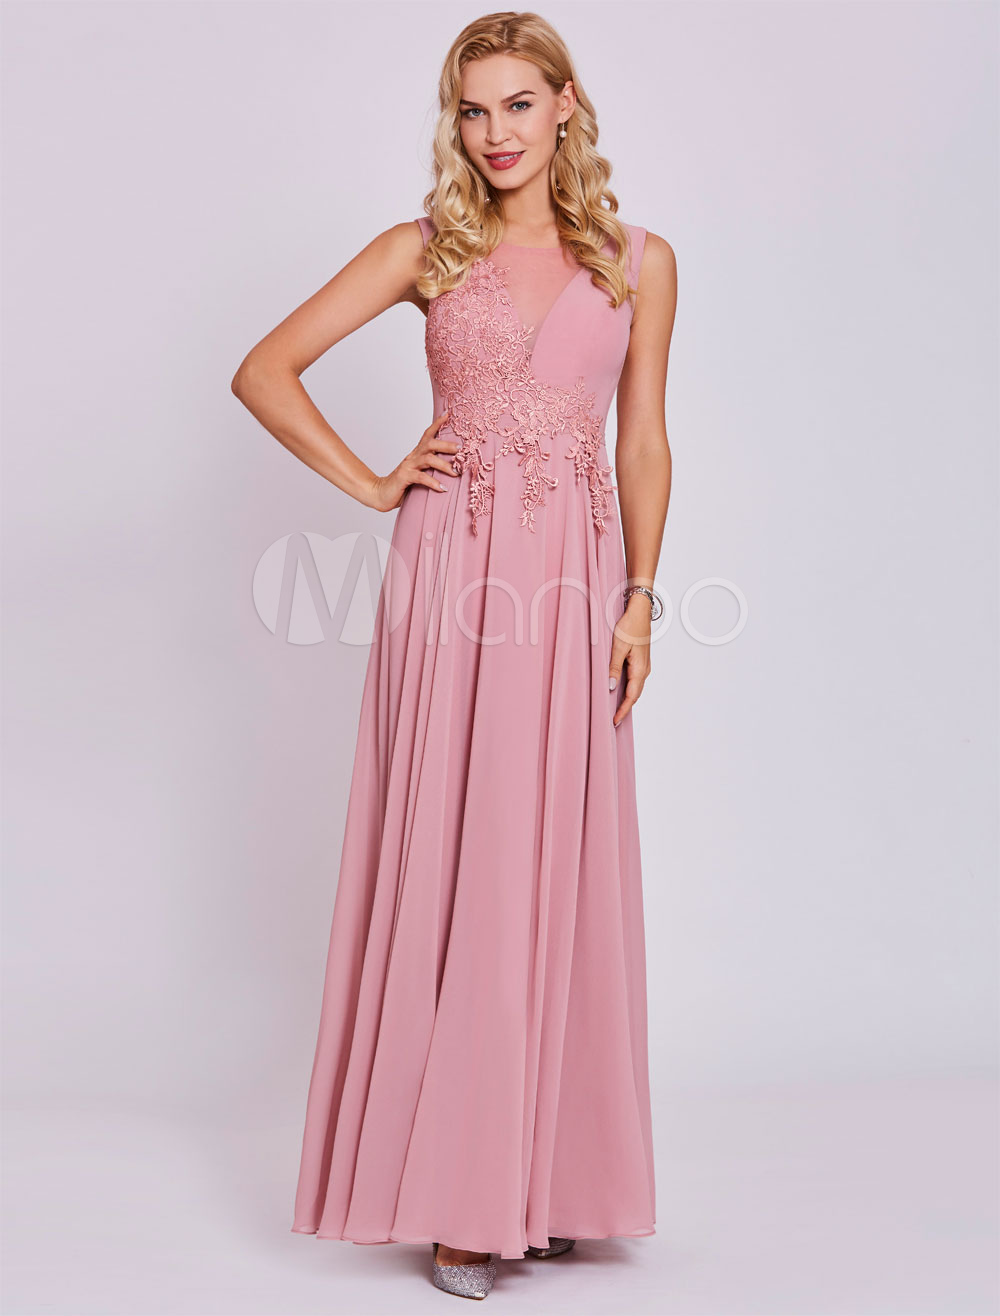 Buy Prom Dresses 2018 Long Lace Applique Chiffon Sleeveless Illusion Cameo Pink Formal Party Dress for $79.19 in Milanoo store